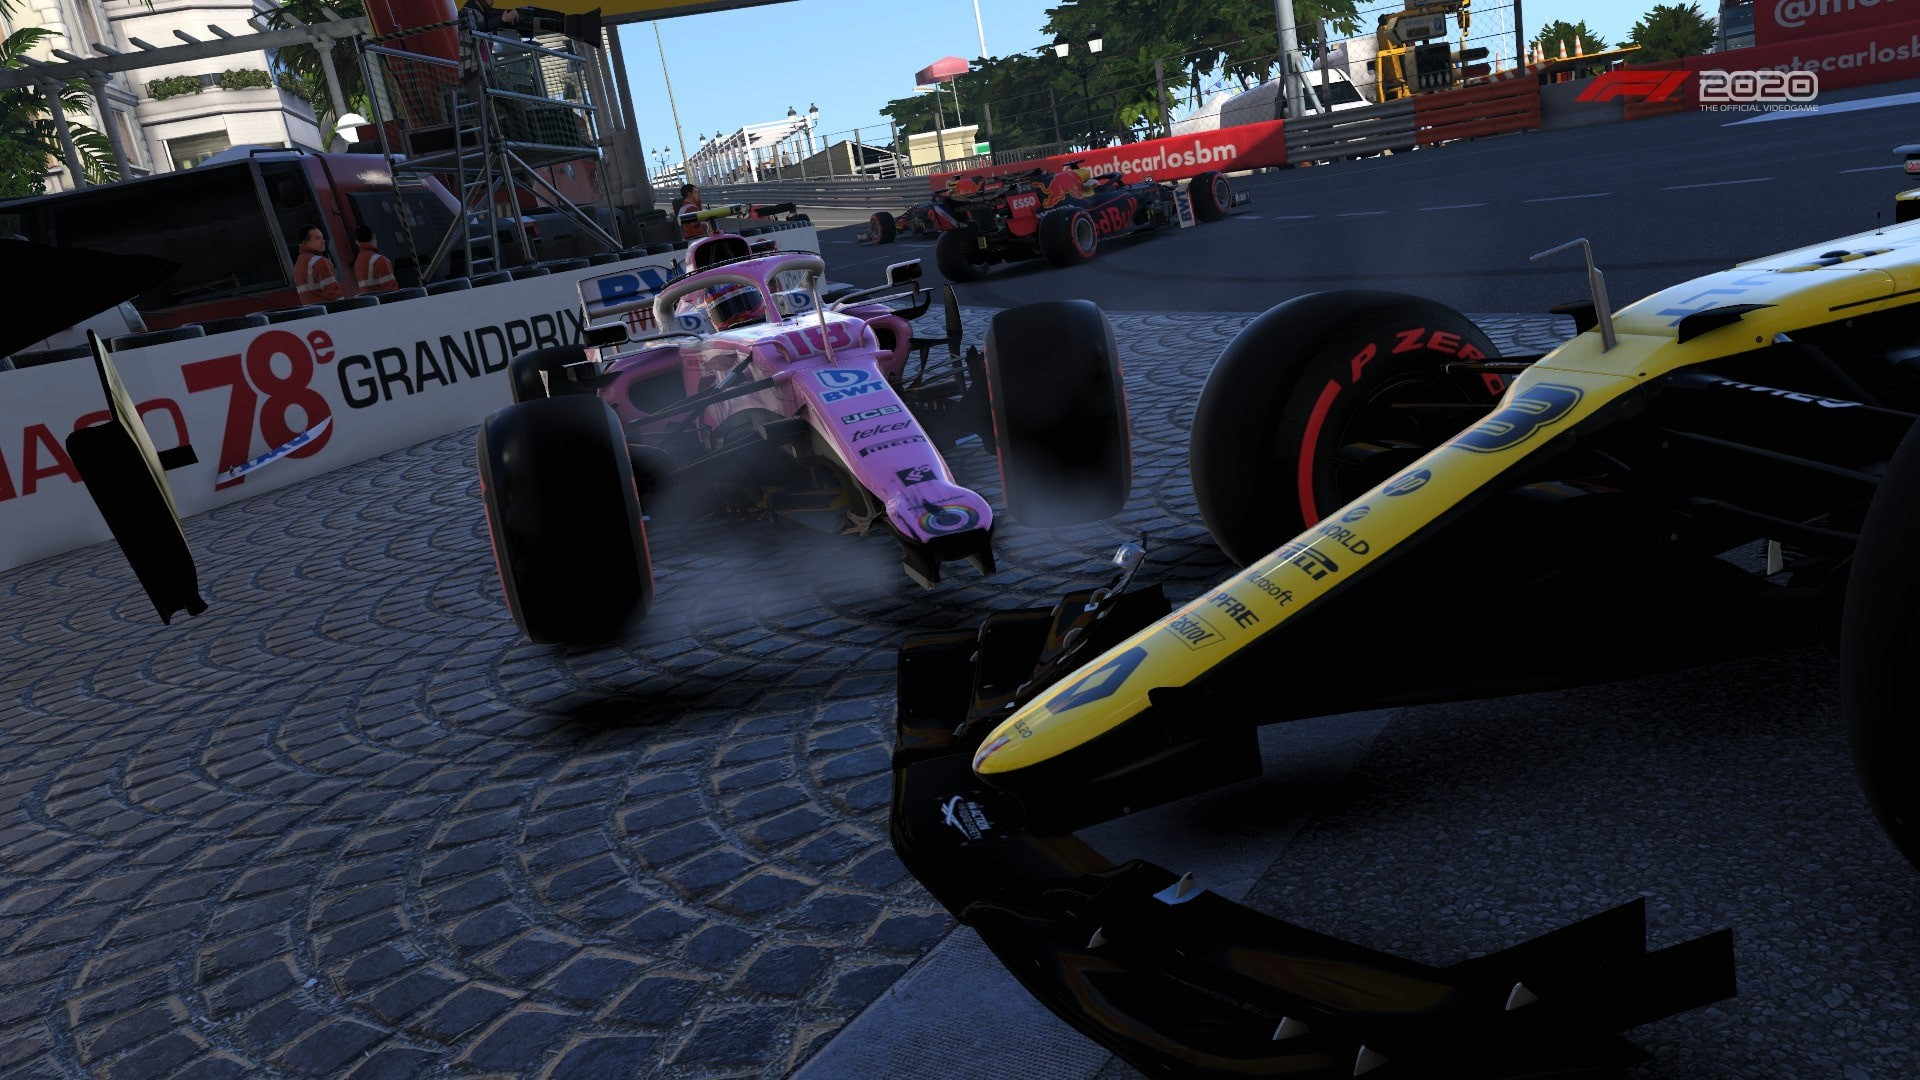 An image of Lance Stroll's damaged Racing Point after a collision with the Renault of Daniel Ricciardo at Monaco.